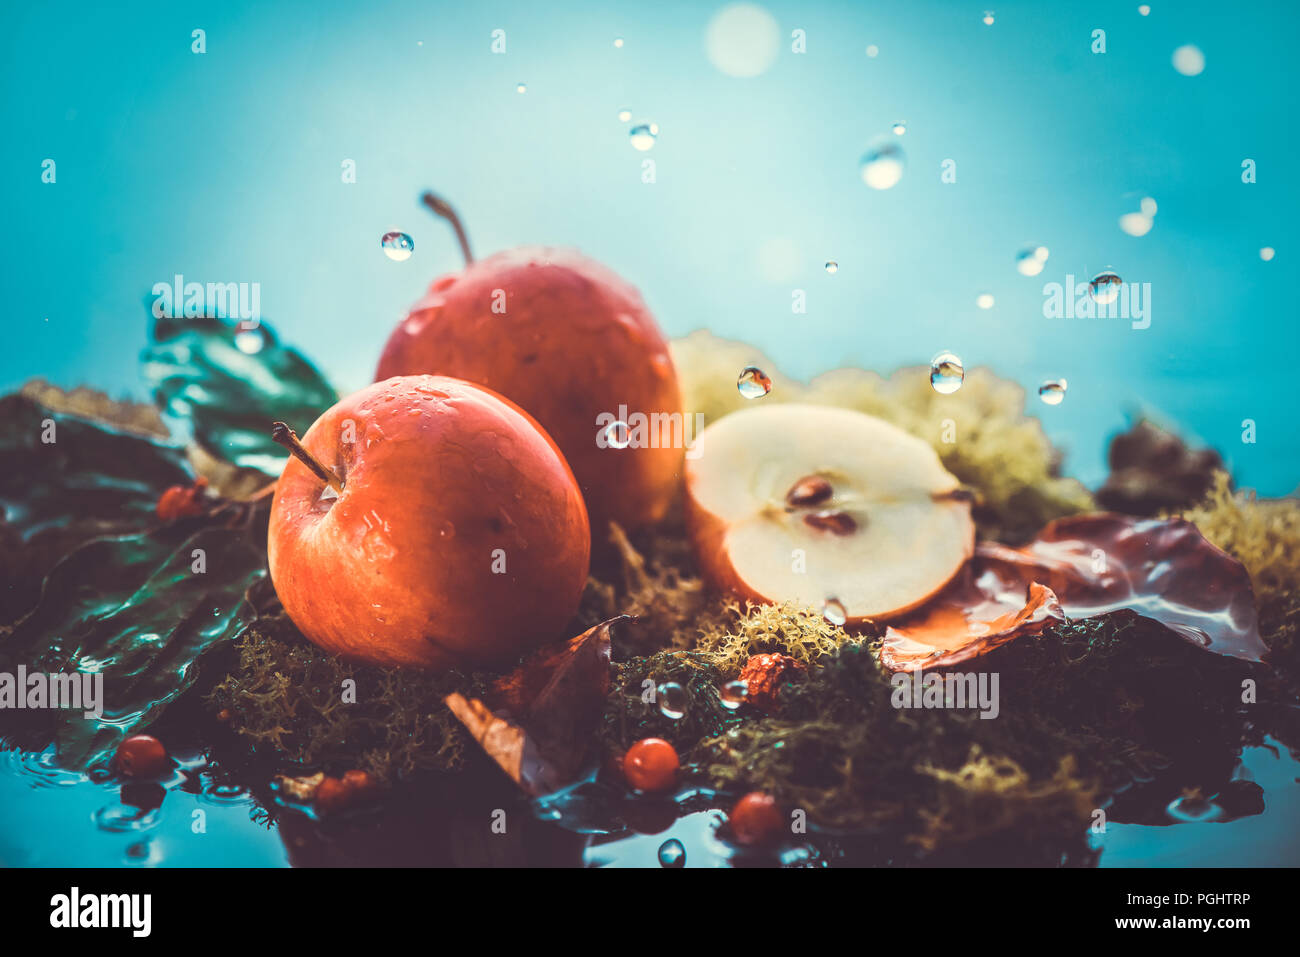 Autumn apples under rain still life. Fall harvest header with water drops and copy space. Red small ranet apples and fallen leaves. Cross process effect - Stock Image